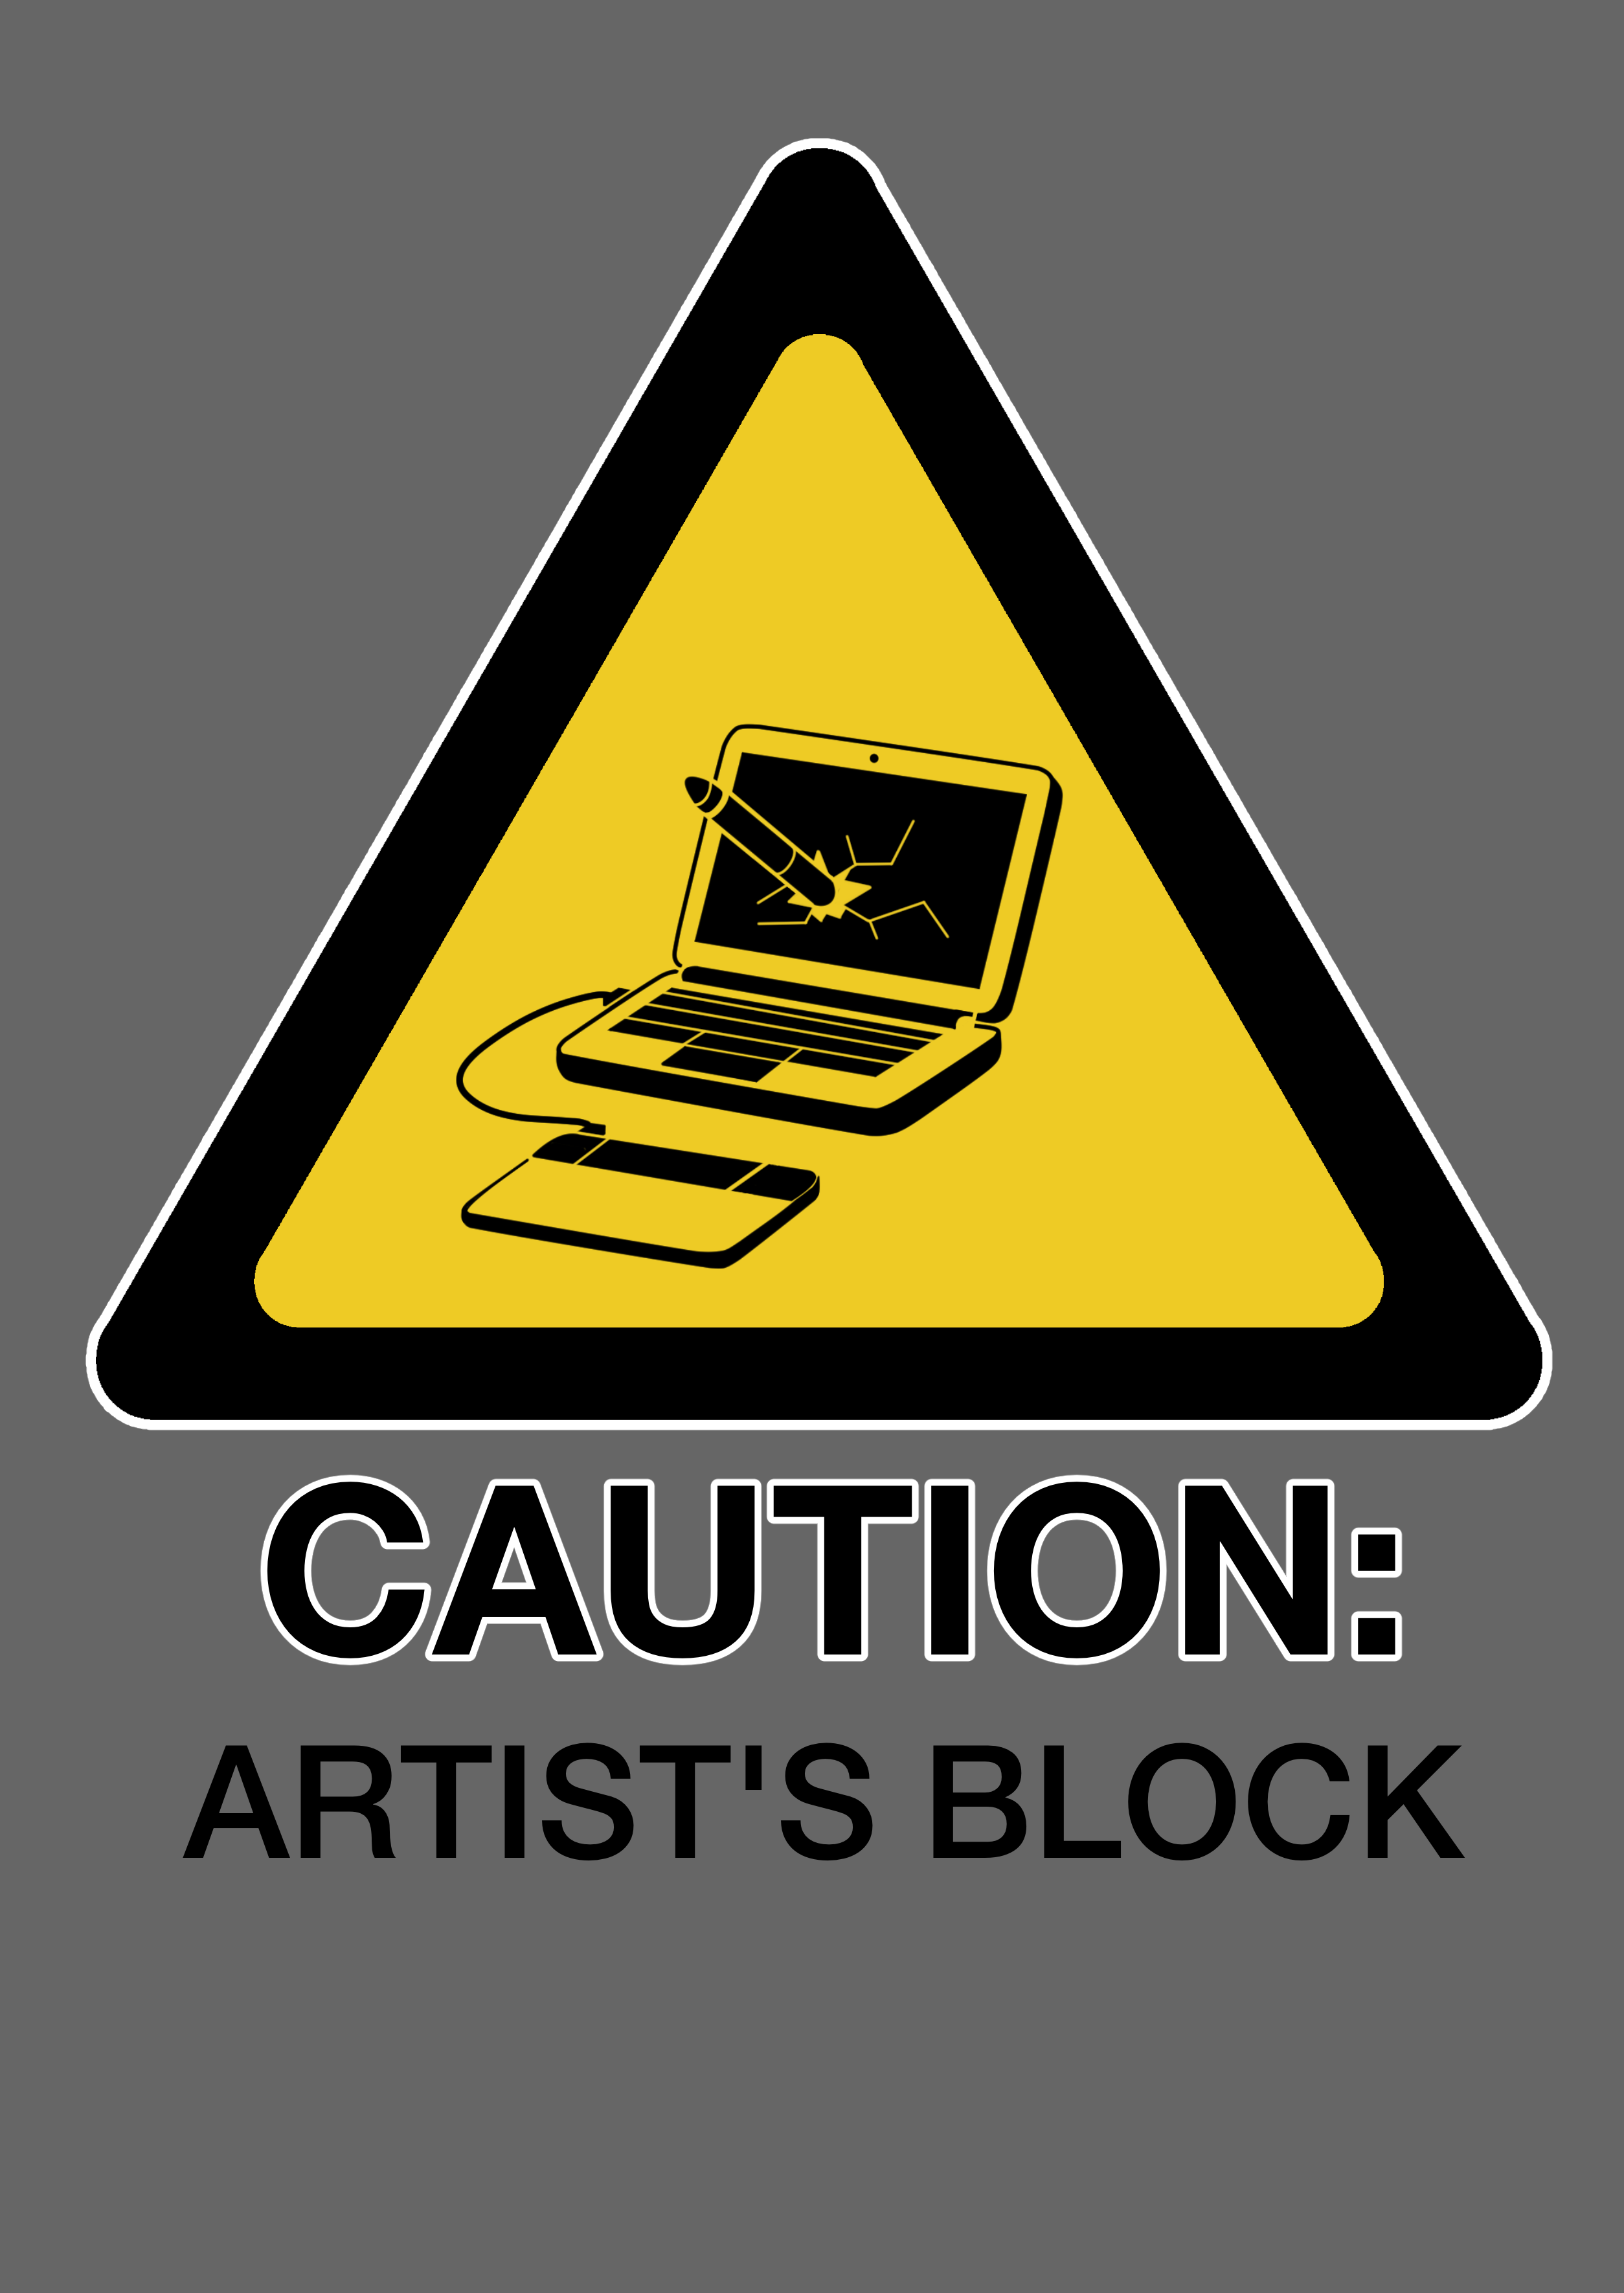 Jazza T-Shirt Design 3: Artist's Block